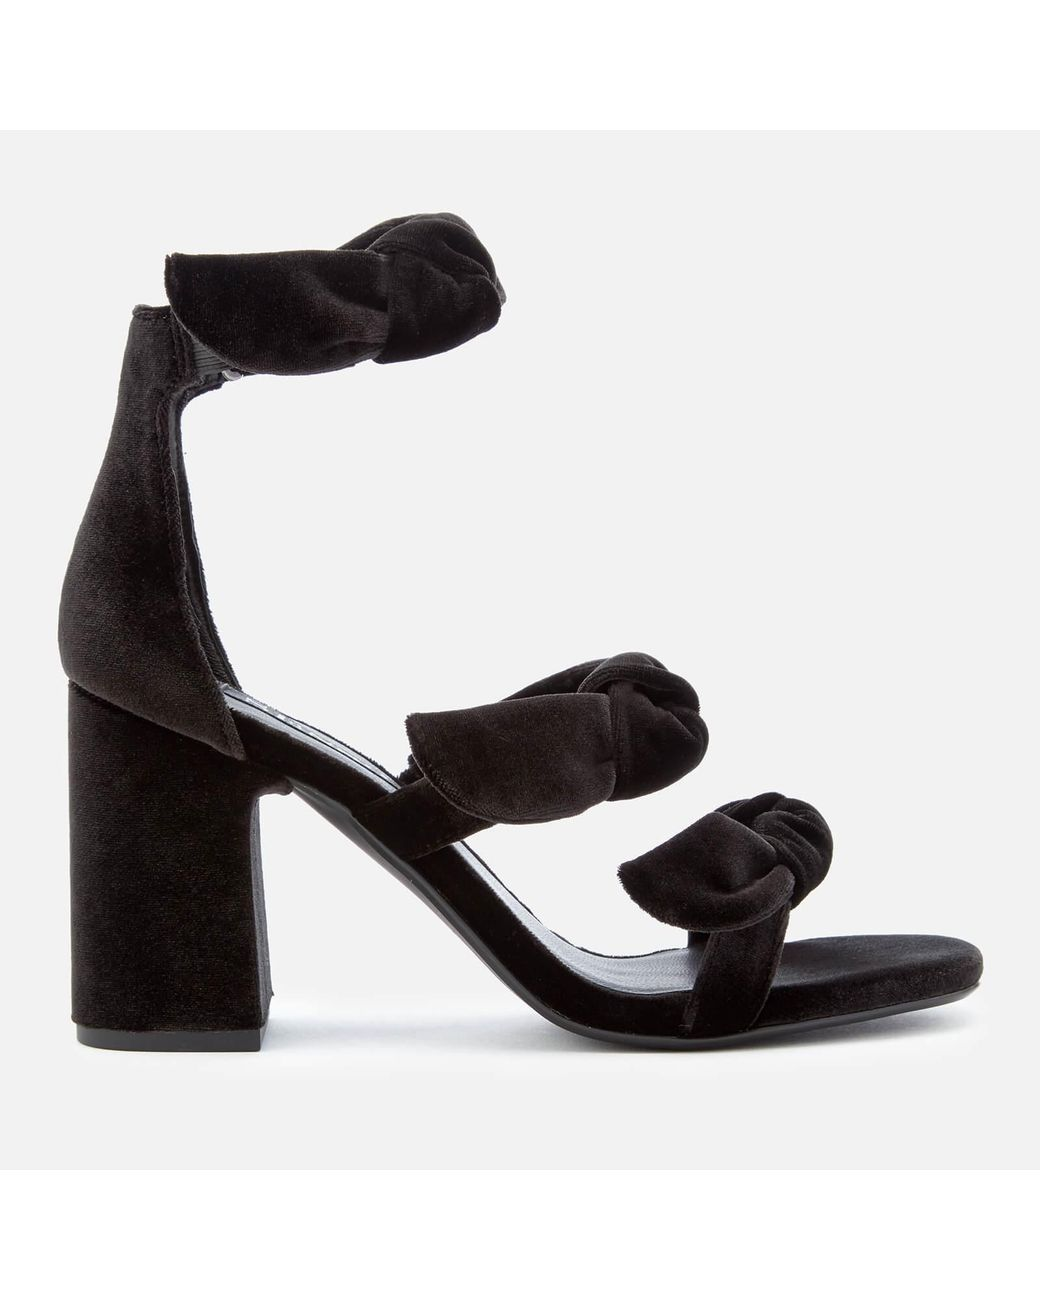 9b84026519 Senso Melvy Iv Velvet Triple Strap Heeled Sandals in Black - Lyst